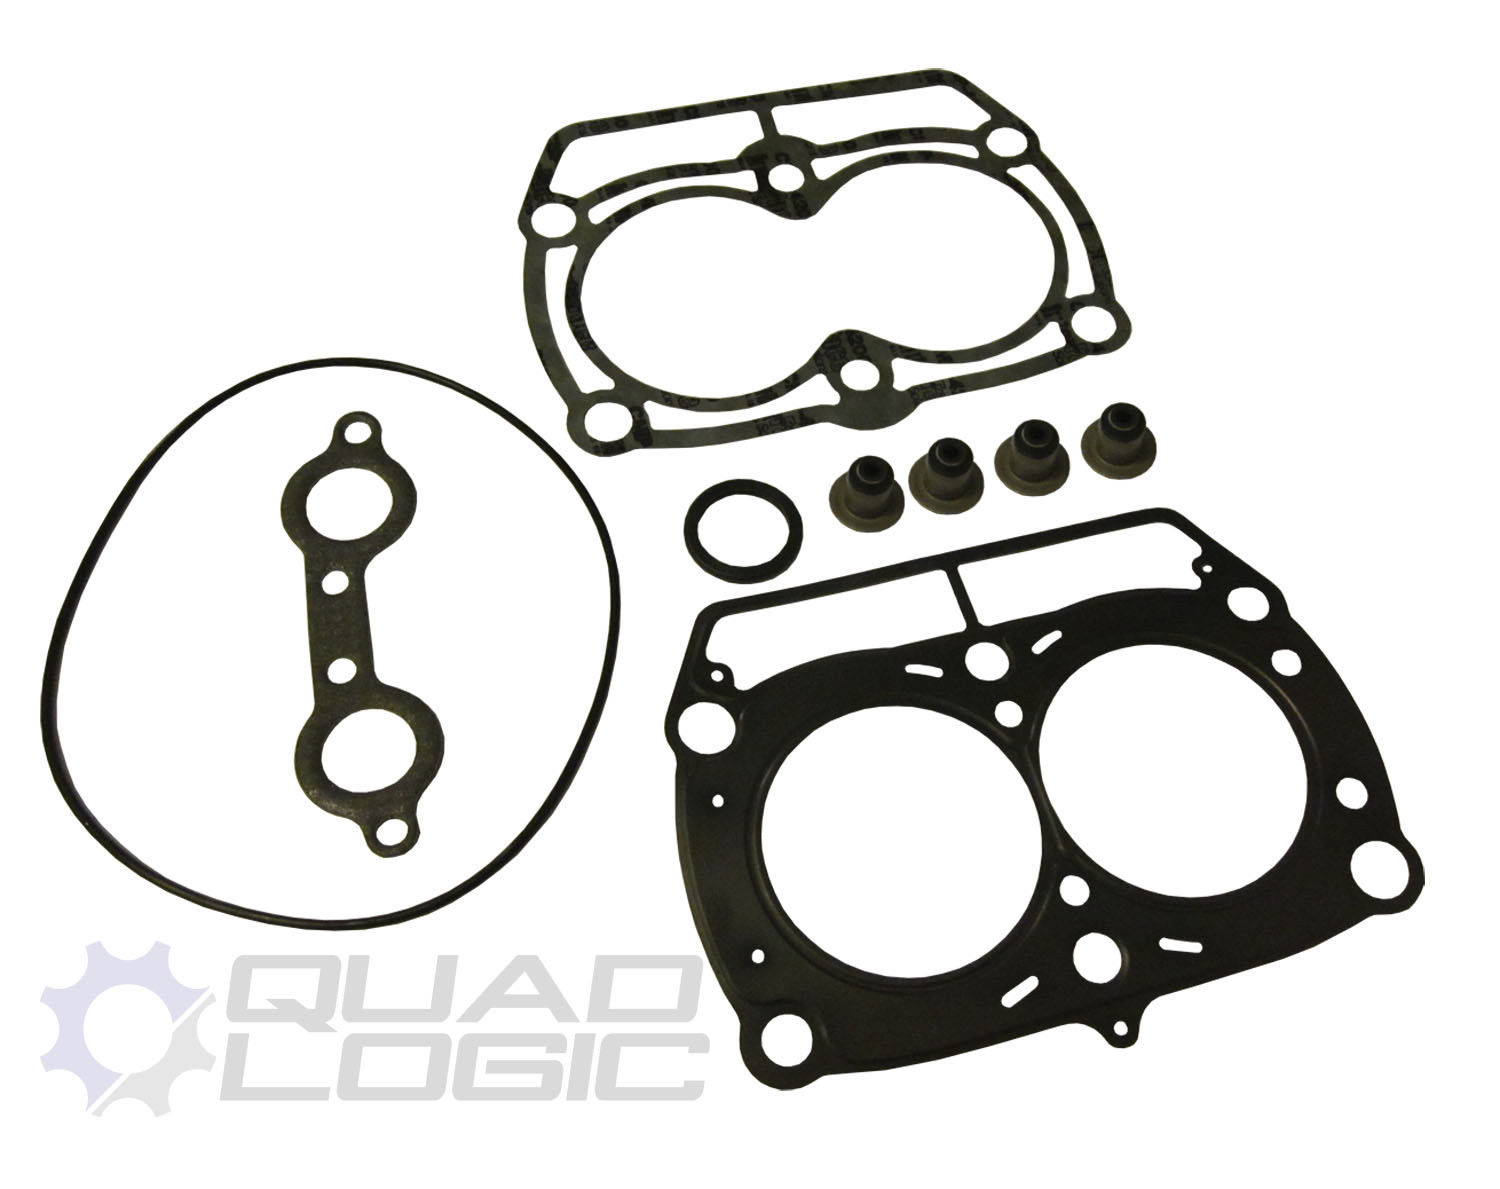 13896 Exploded View  mand Transmission Brake Mower Lawn EL63 PE60VD CASTELGARDEN furthermore Retaining Ring Automated Assembly together with Gaskets furthermore Chevy Impala 3 5 Thermostat Location besides China Giant O Rings. on quad ring seals